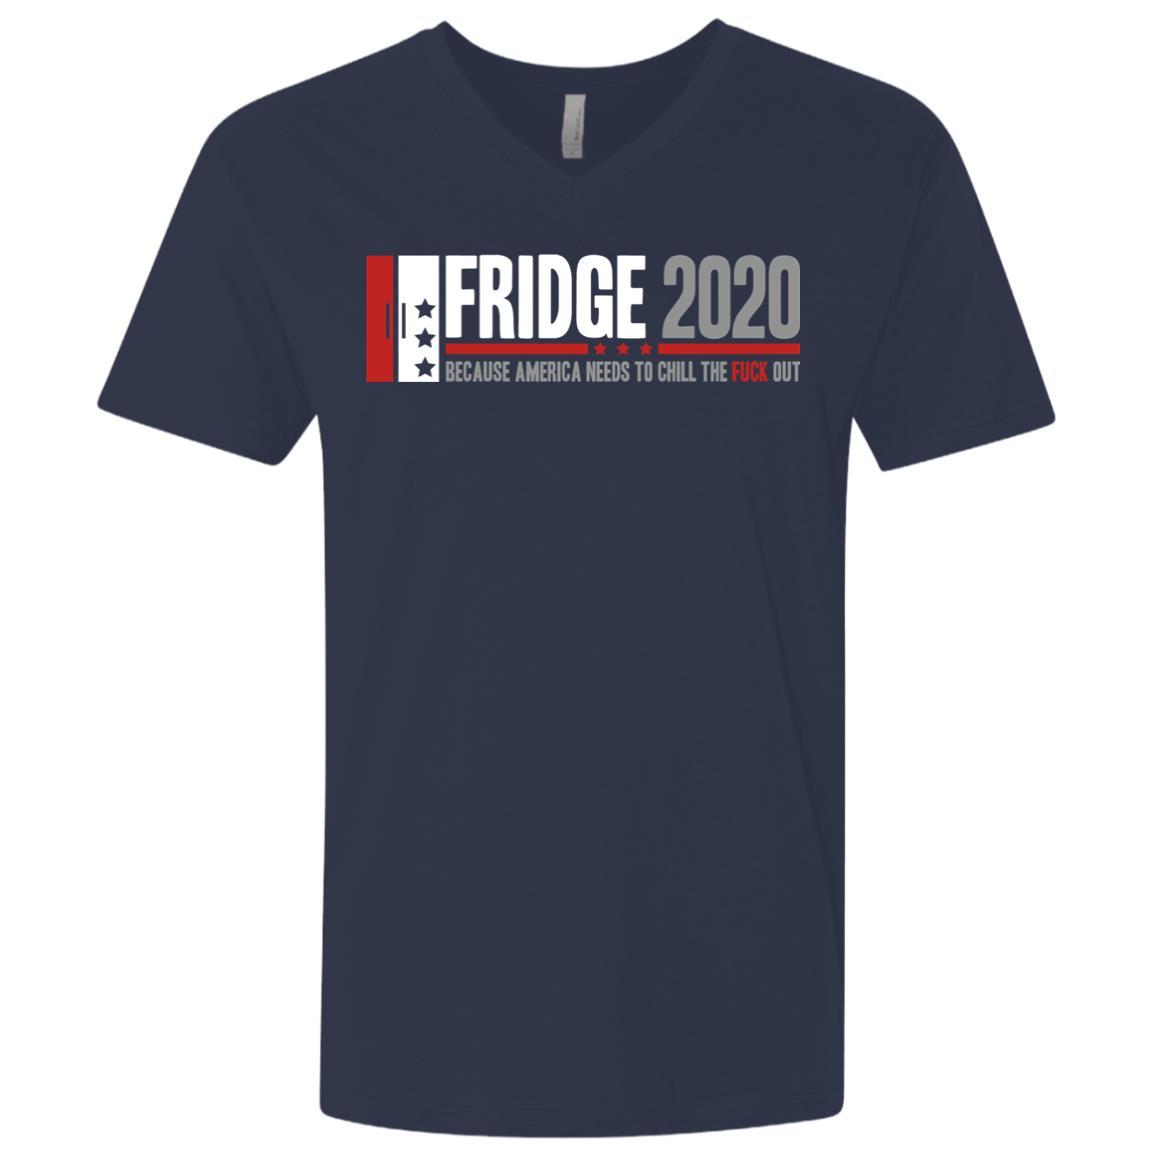 T-Shirts - Fridge 2020 Premium V-Neck